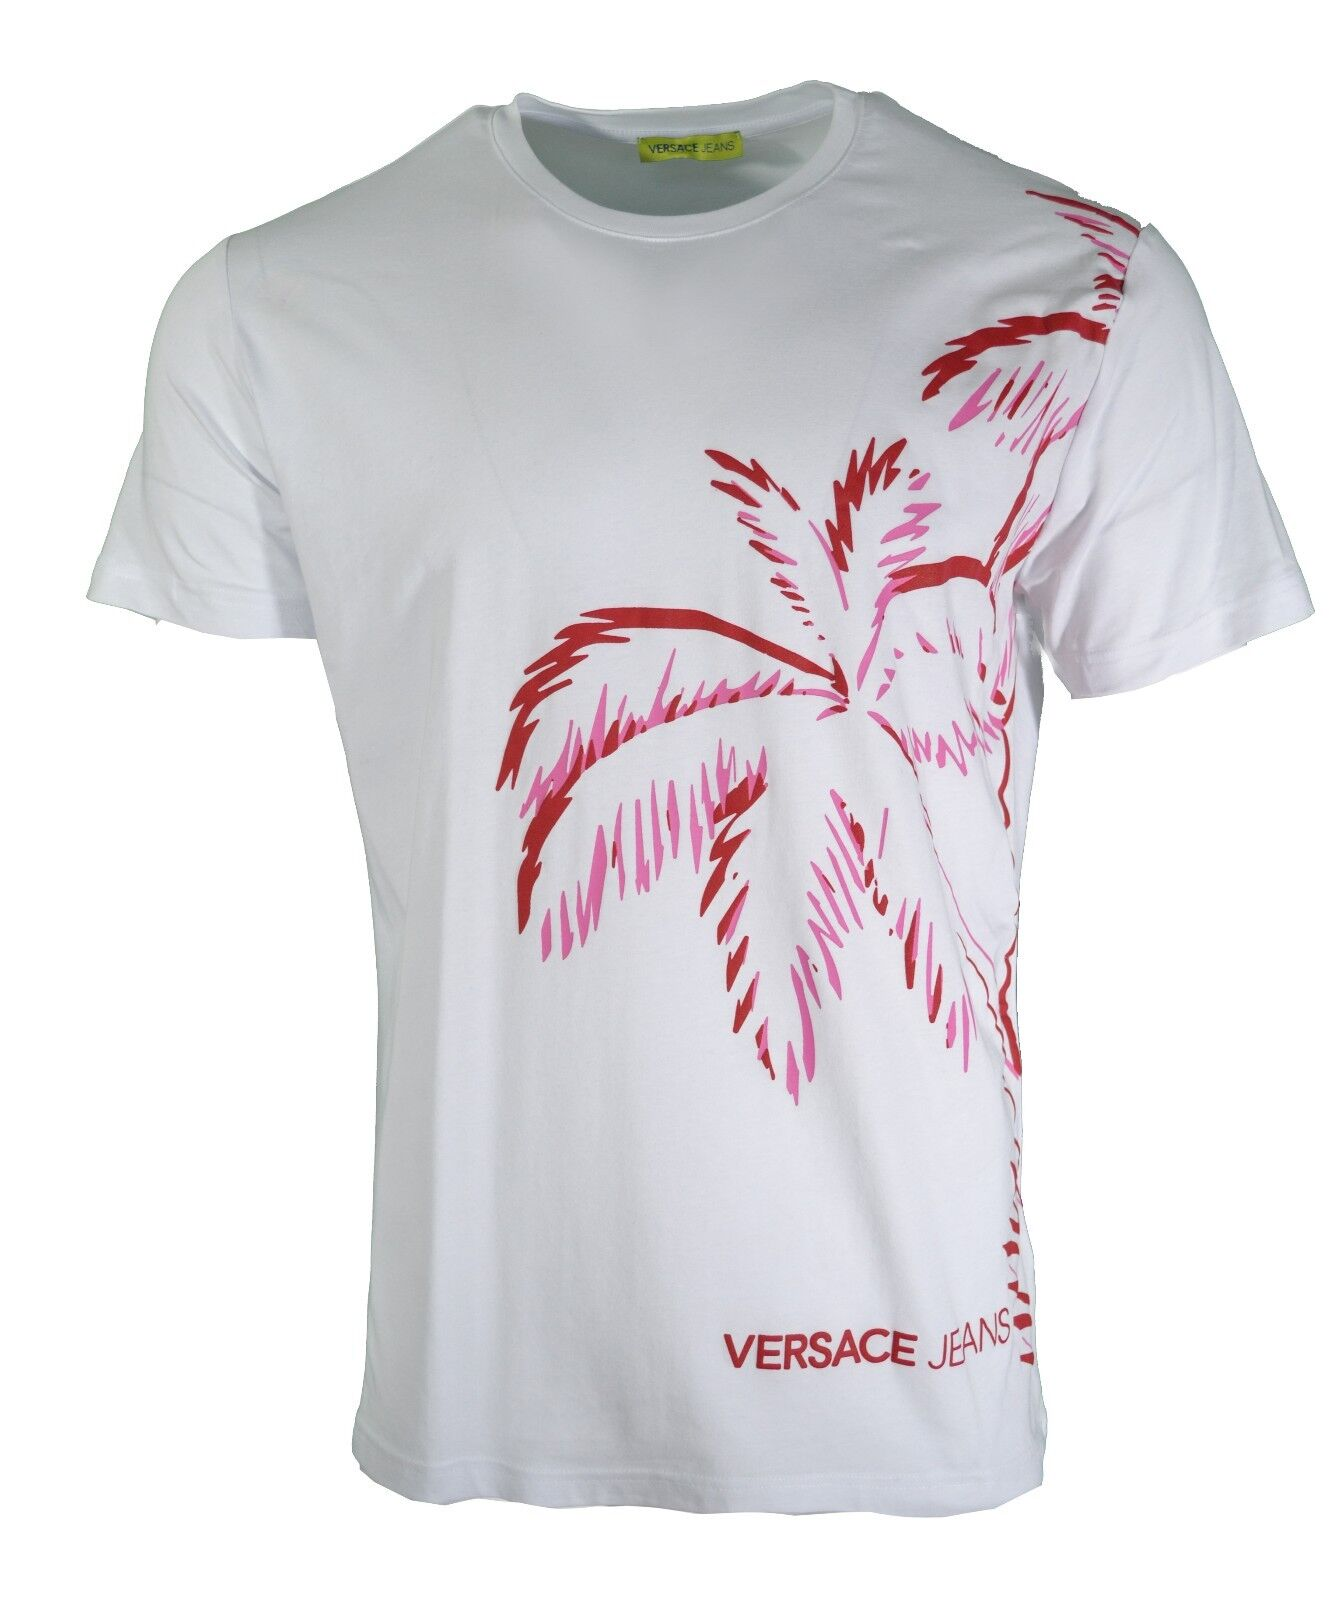 BNWT VERSACE JEANS WHITE RED PINK PALM TREE TROPICAL SUNSET PRINT T-SHIRT 2018